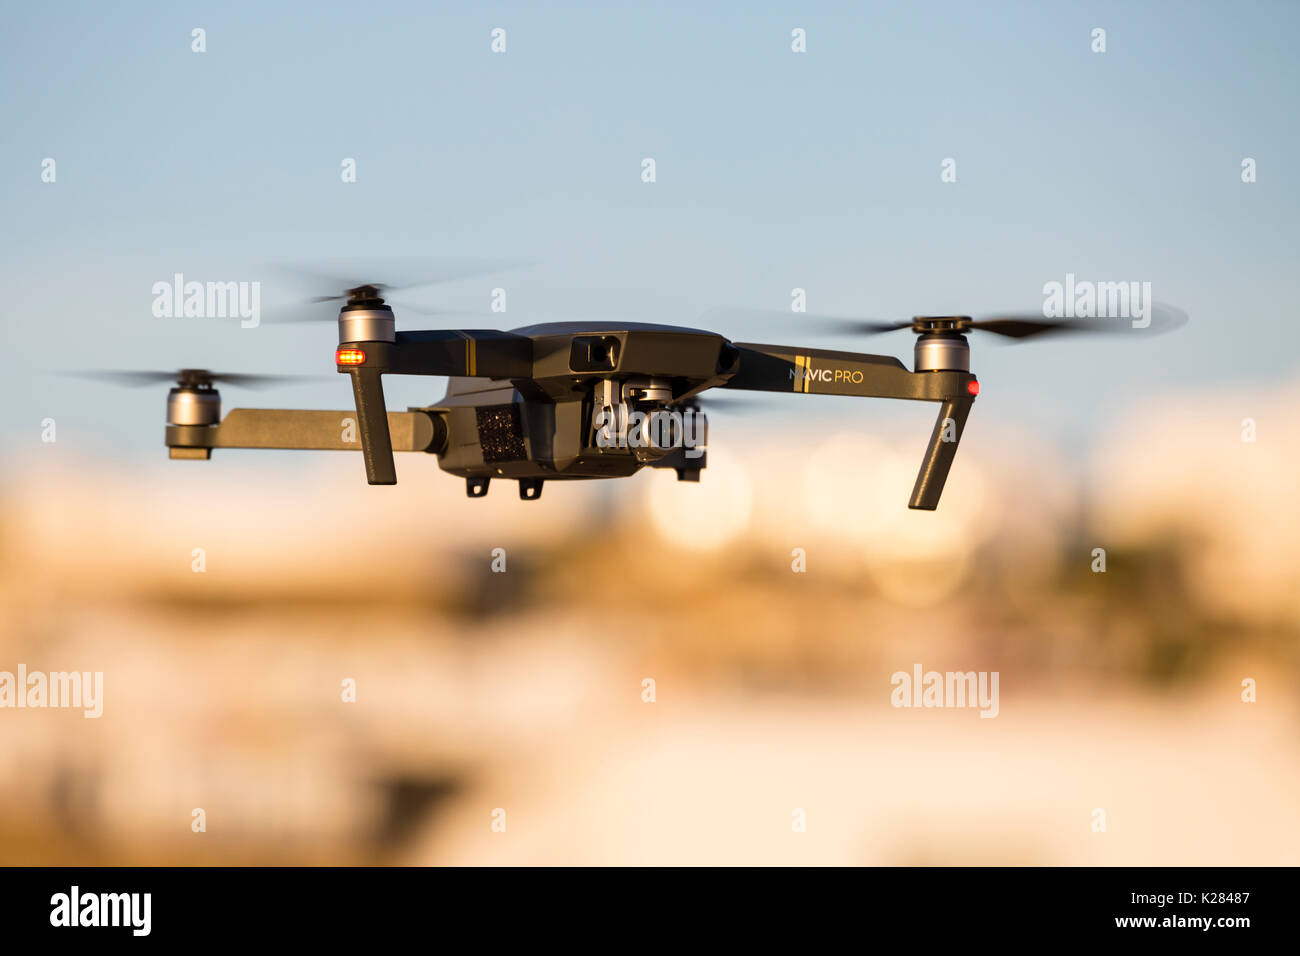 Mavic Pro quadcopter drone in flight. - Stock Image